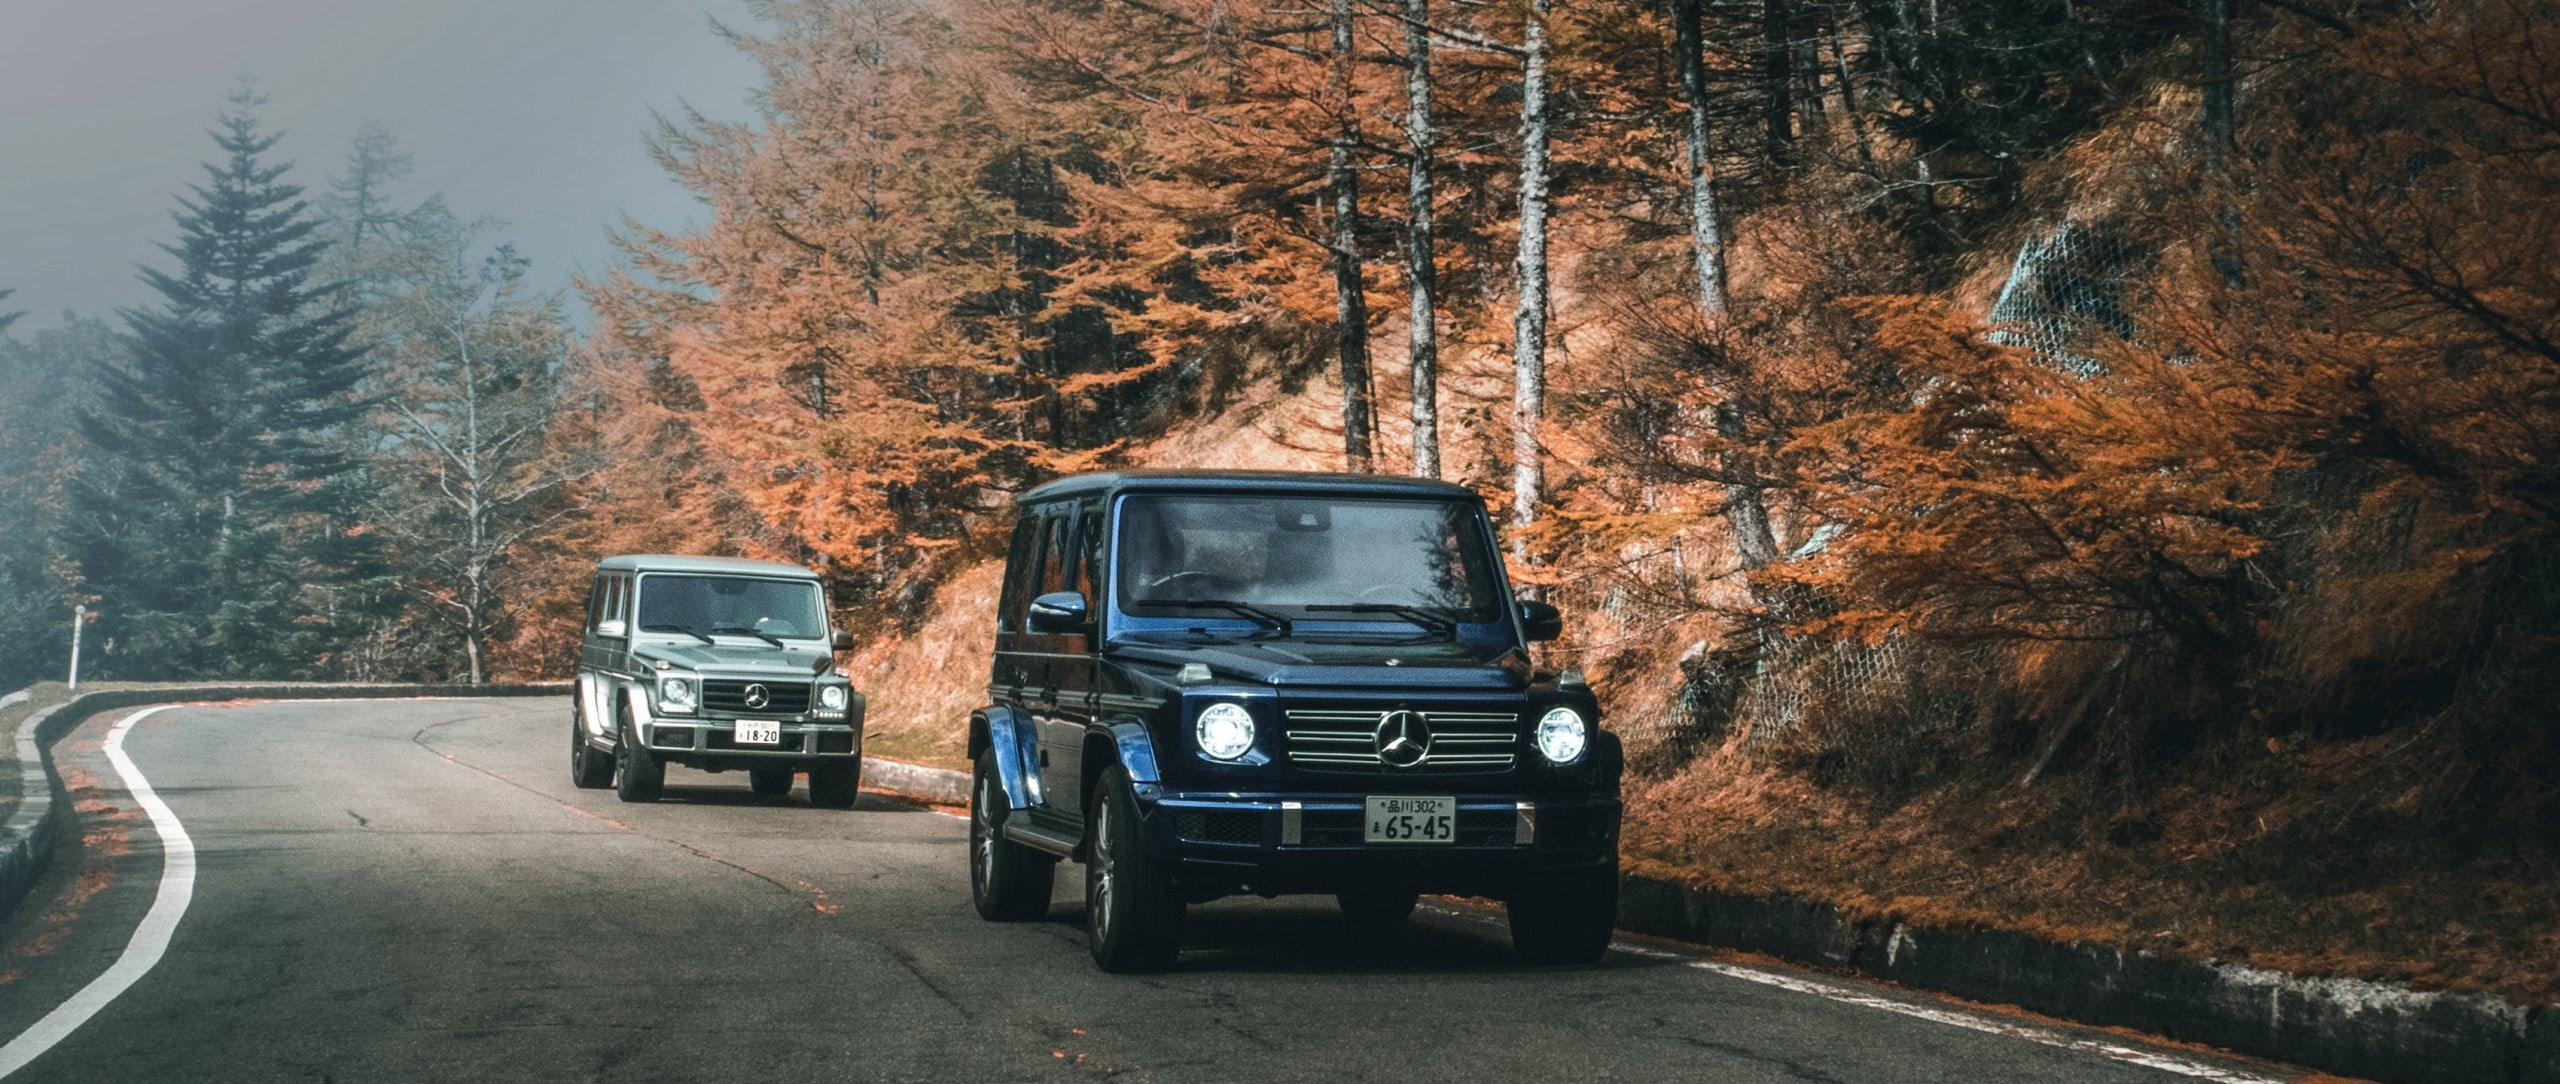 The Mercedes-Benz G-Classes (W 463) in brilliant blue and selenite grey drive one after the other along a road that leads along a forest, in the background trees can be seen.